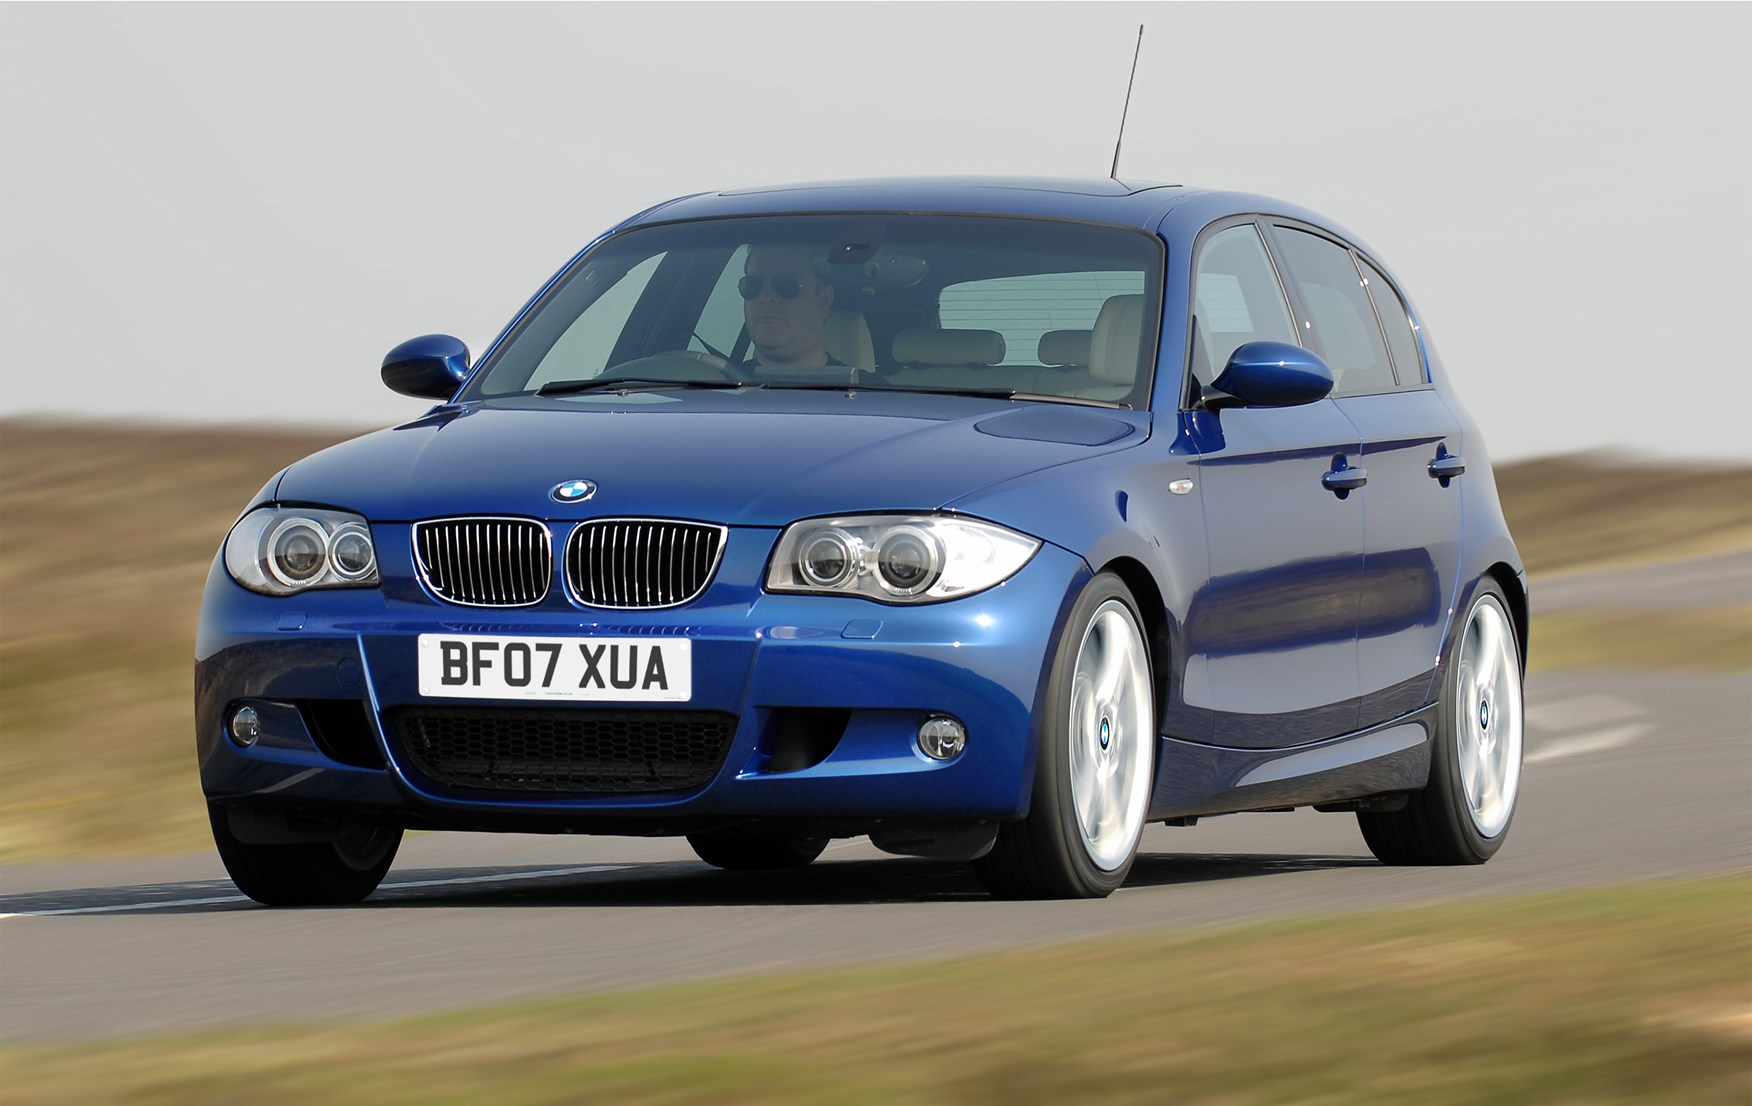 BMW 1 Series I (E81/E82/E87/E88) 2004 - 2007 Hatchback 5 door #2